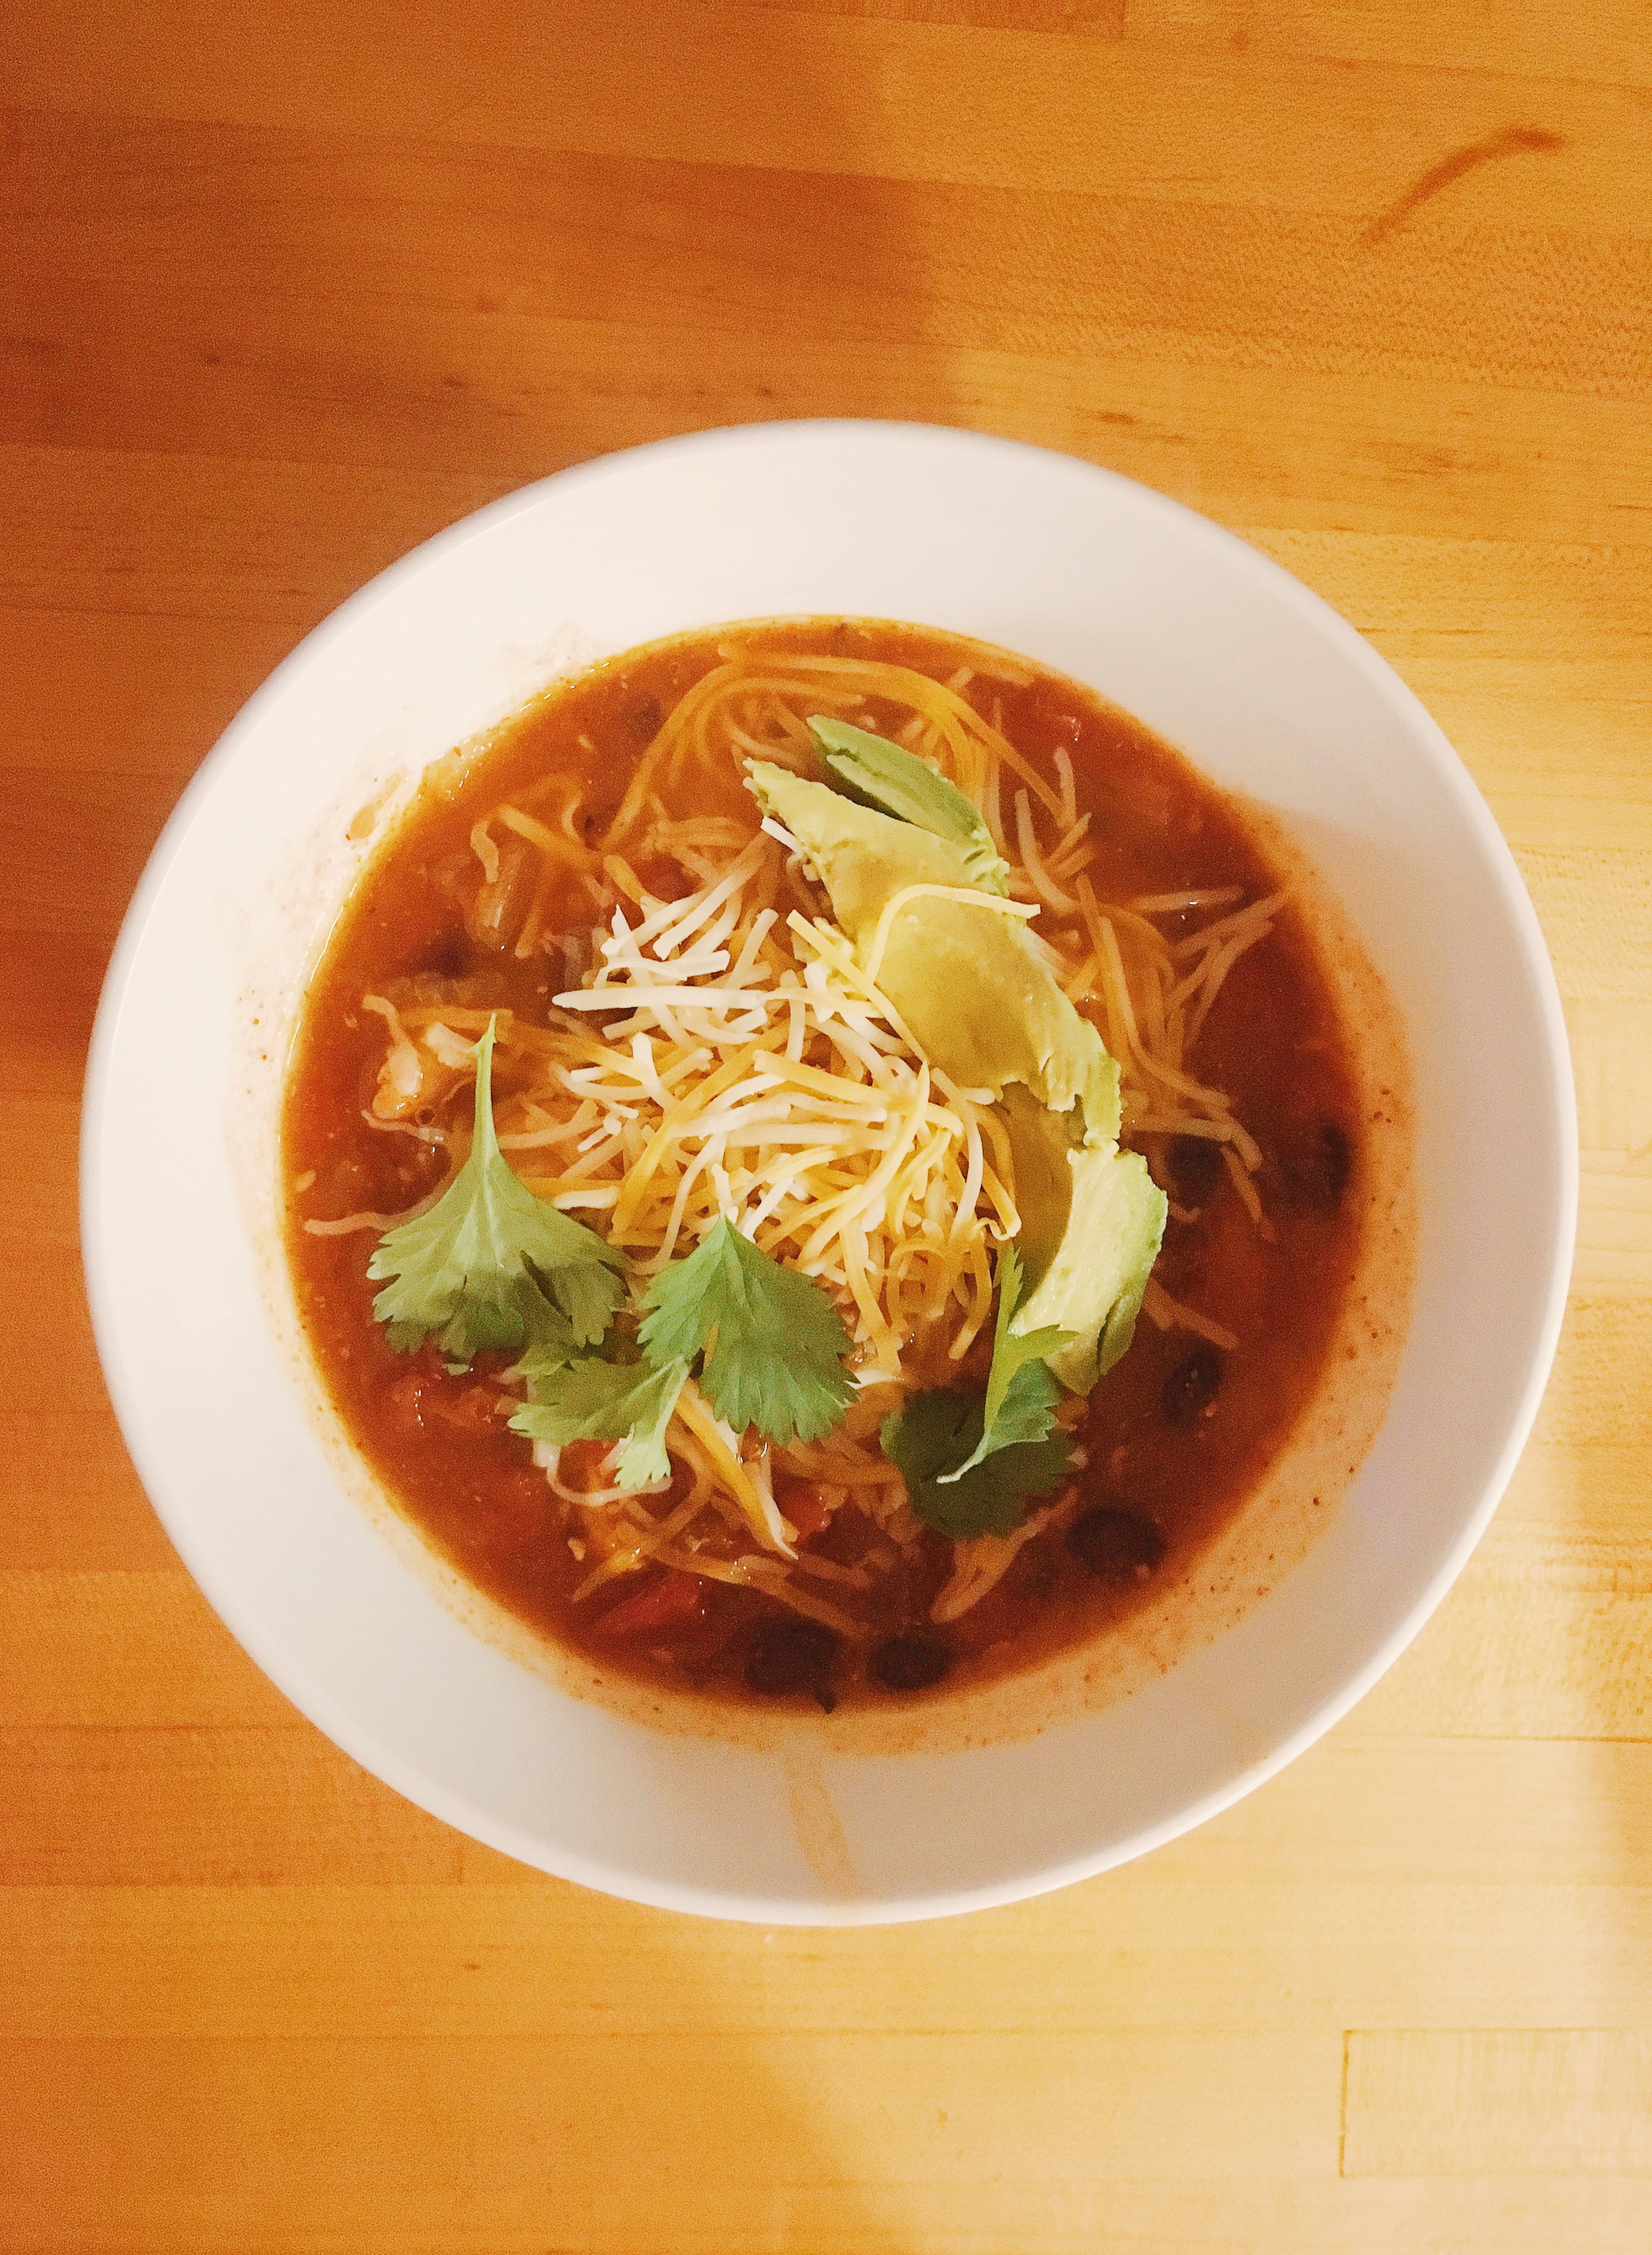 Homemade tortilla soup from my favorite human.